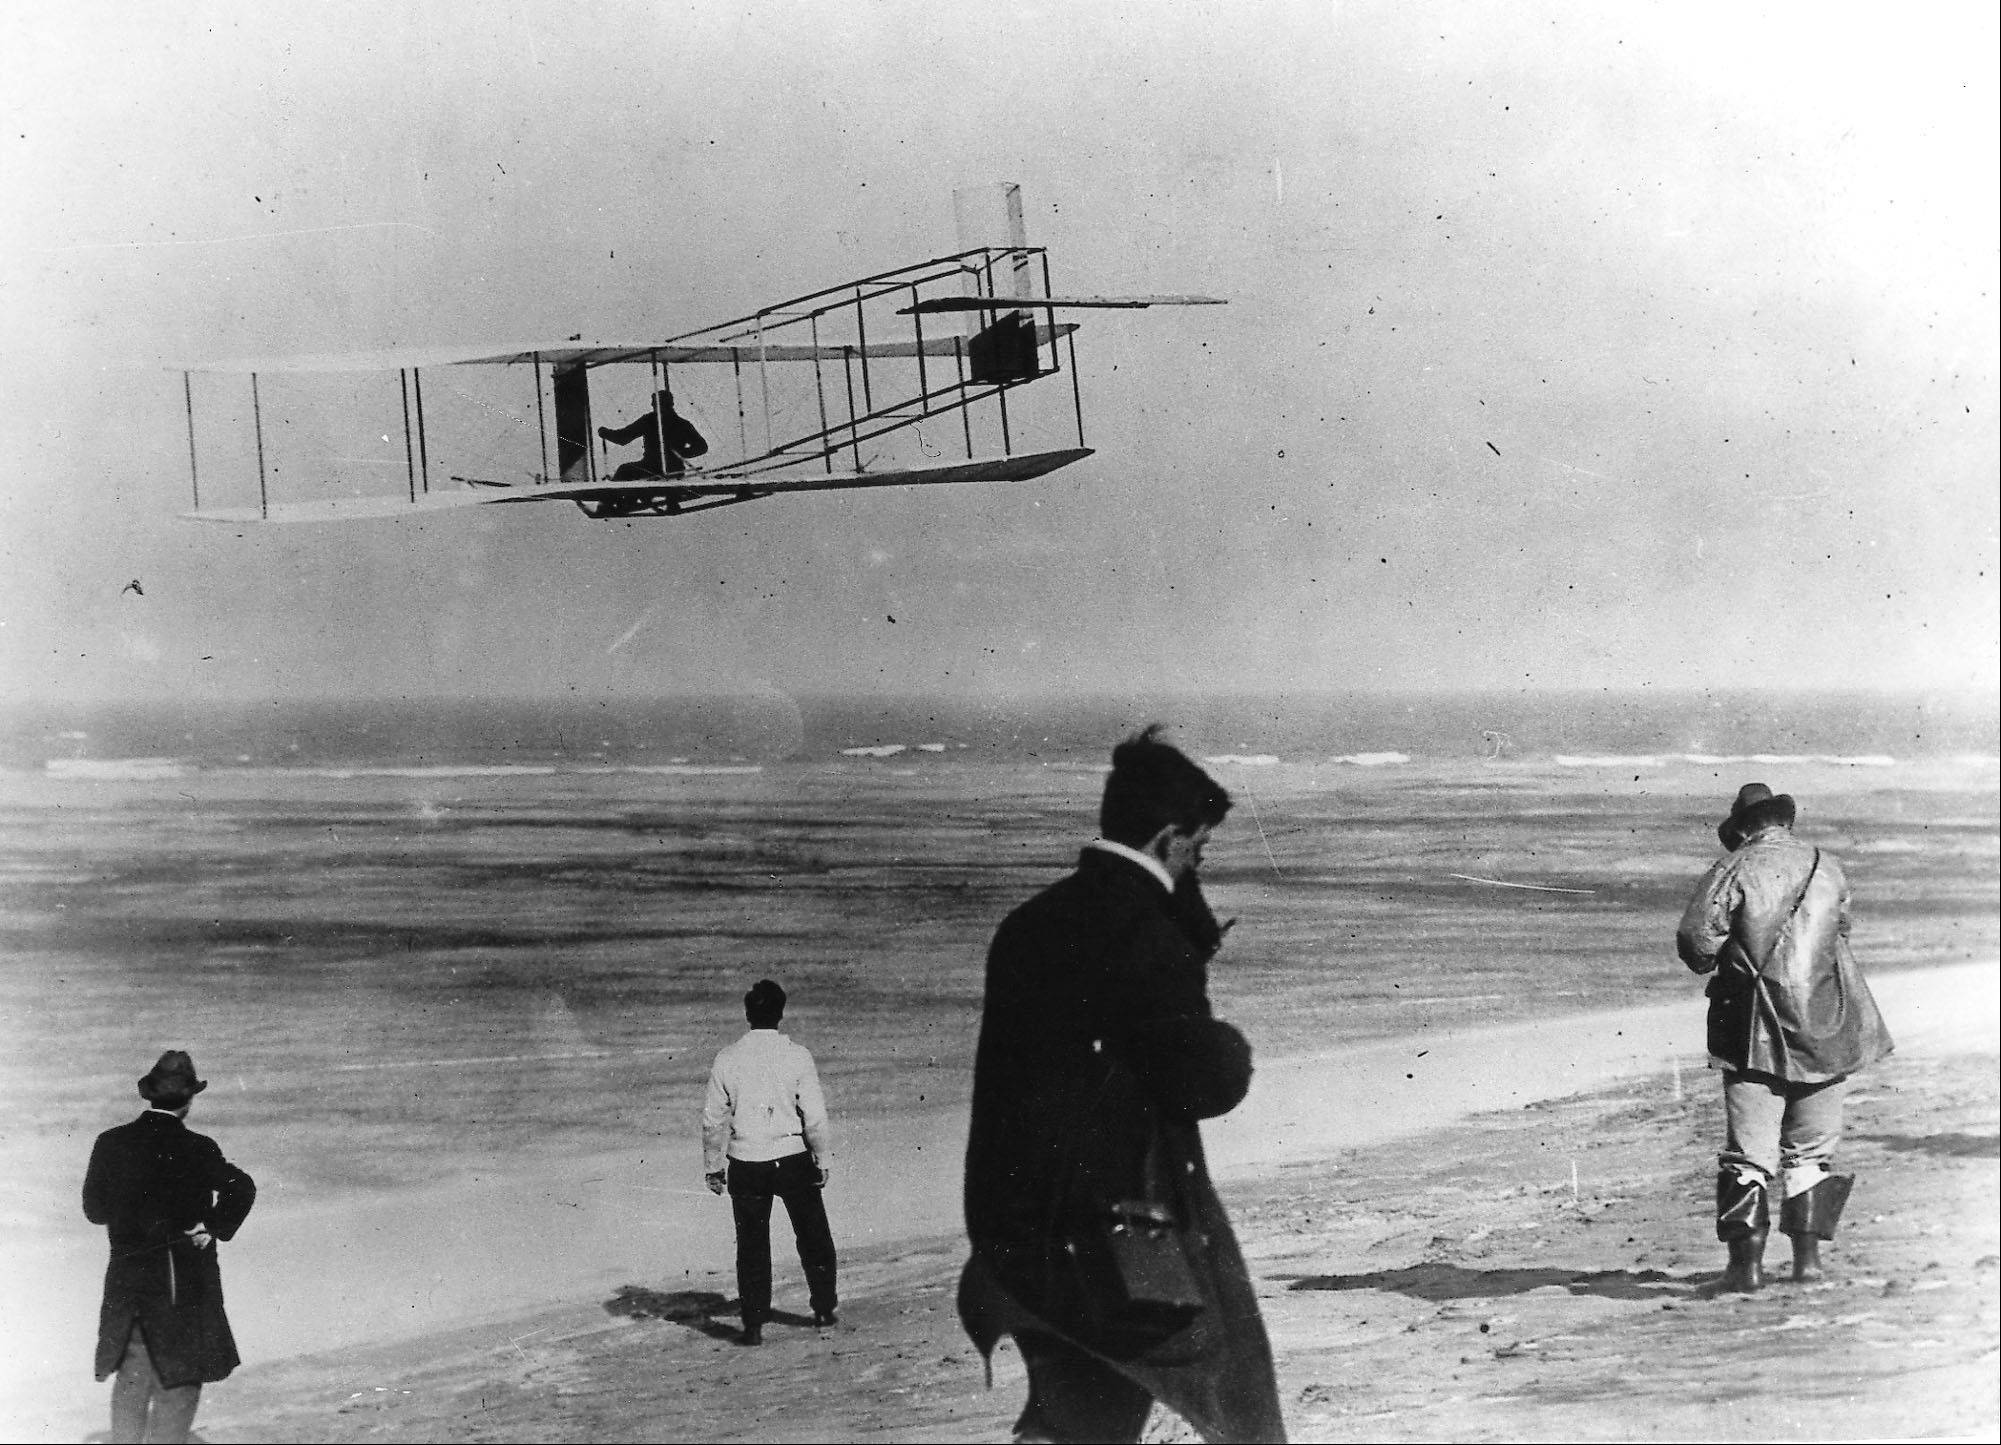 Orville and Wilbur Wright test their airplane on a beach. The Wright brothers have long been credited as the first to achieve powered flight. But in June, 2013, Connecticut Gov. Dannel P. Malloy signed a law giving German-born aviator and Connecticut resident Gustave Whitehead the honor of being first.